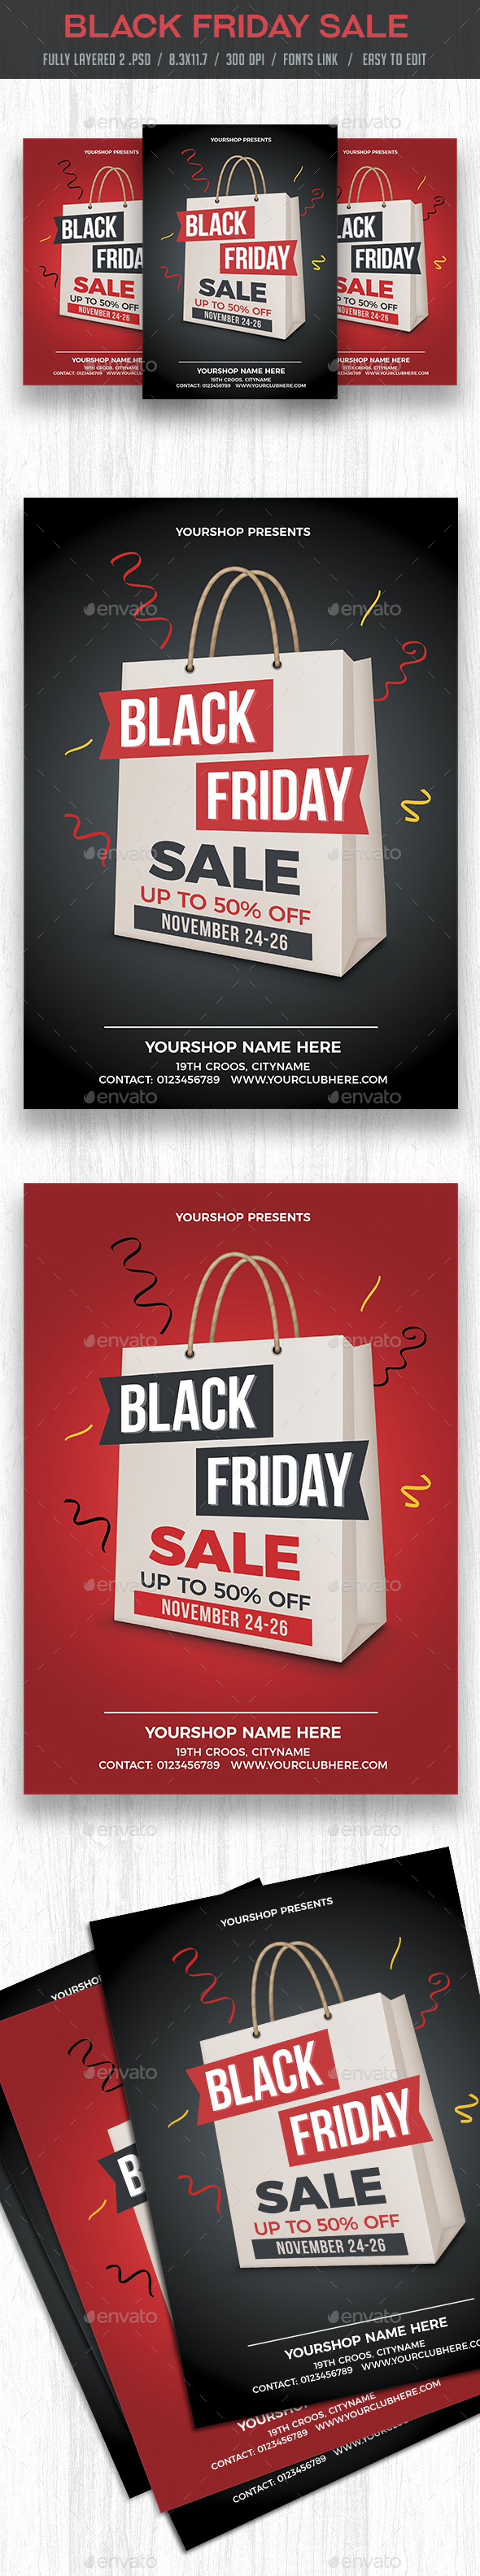 Black Friday Sale - Commerce Flyers